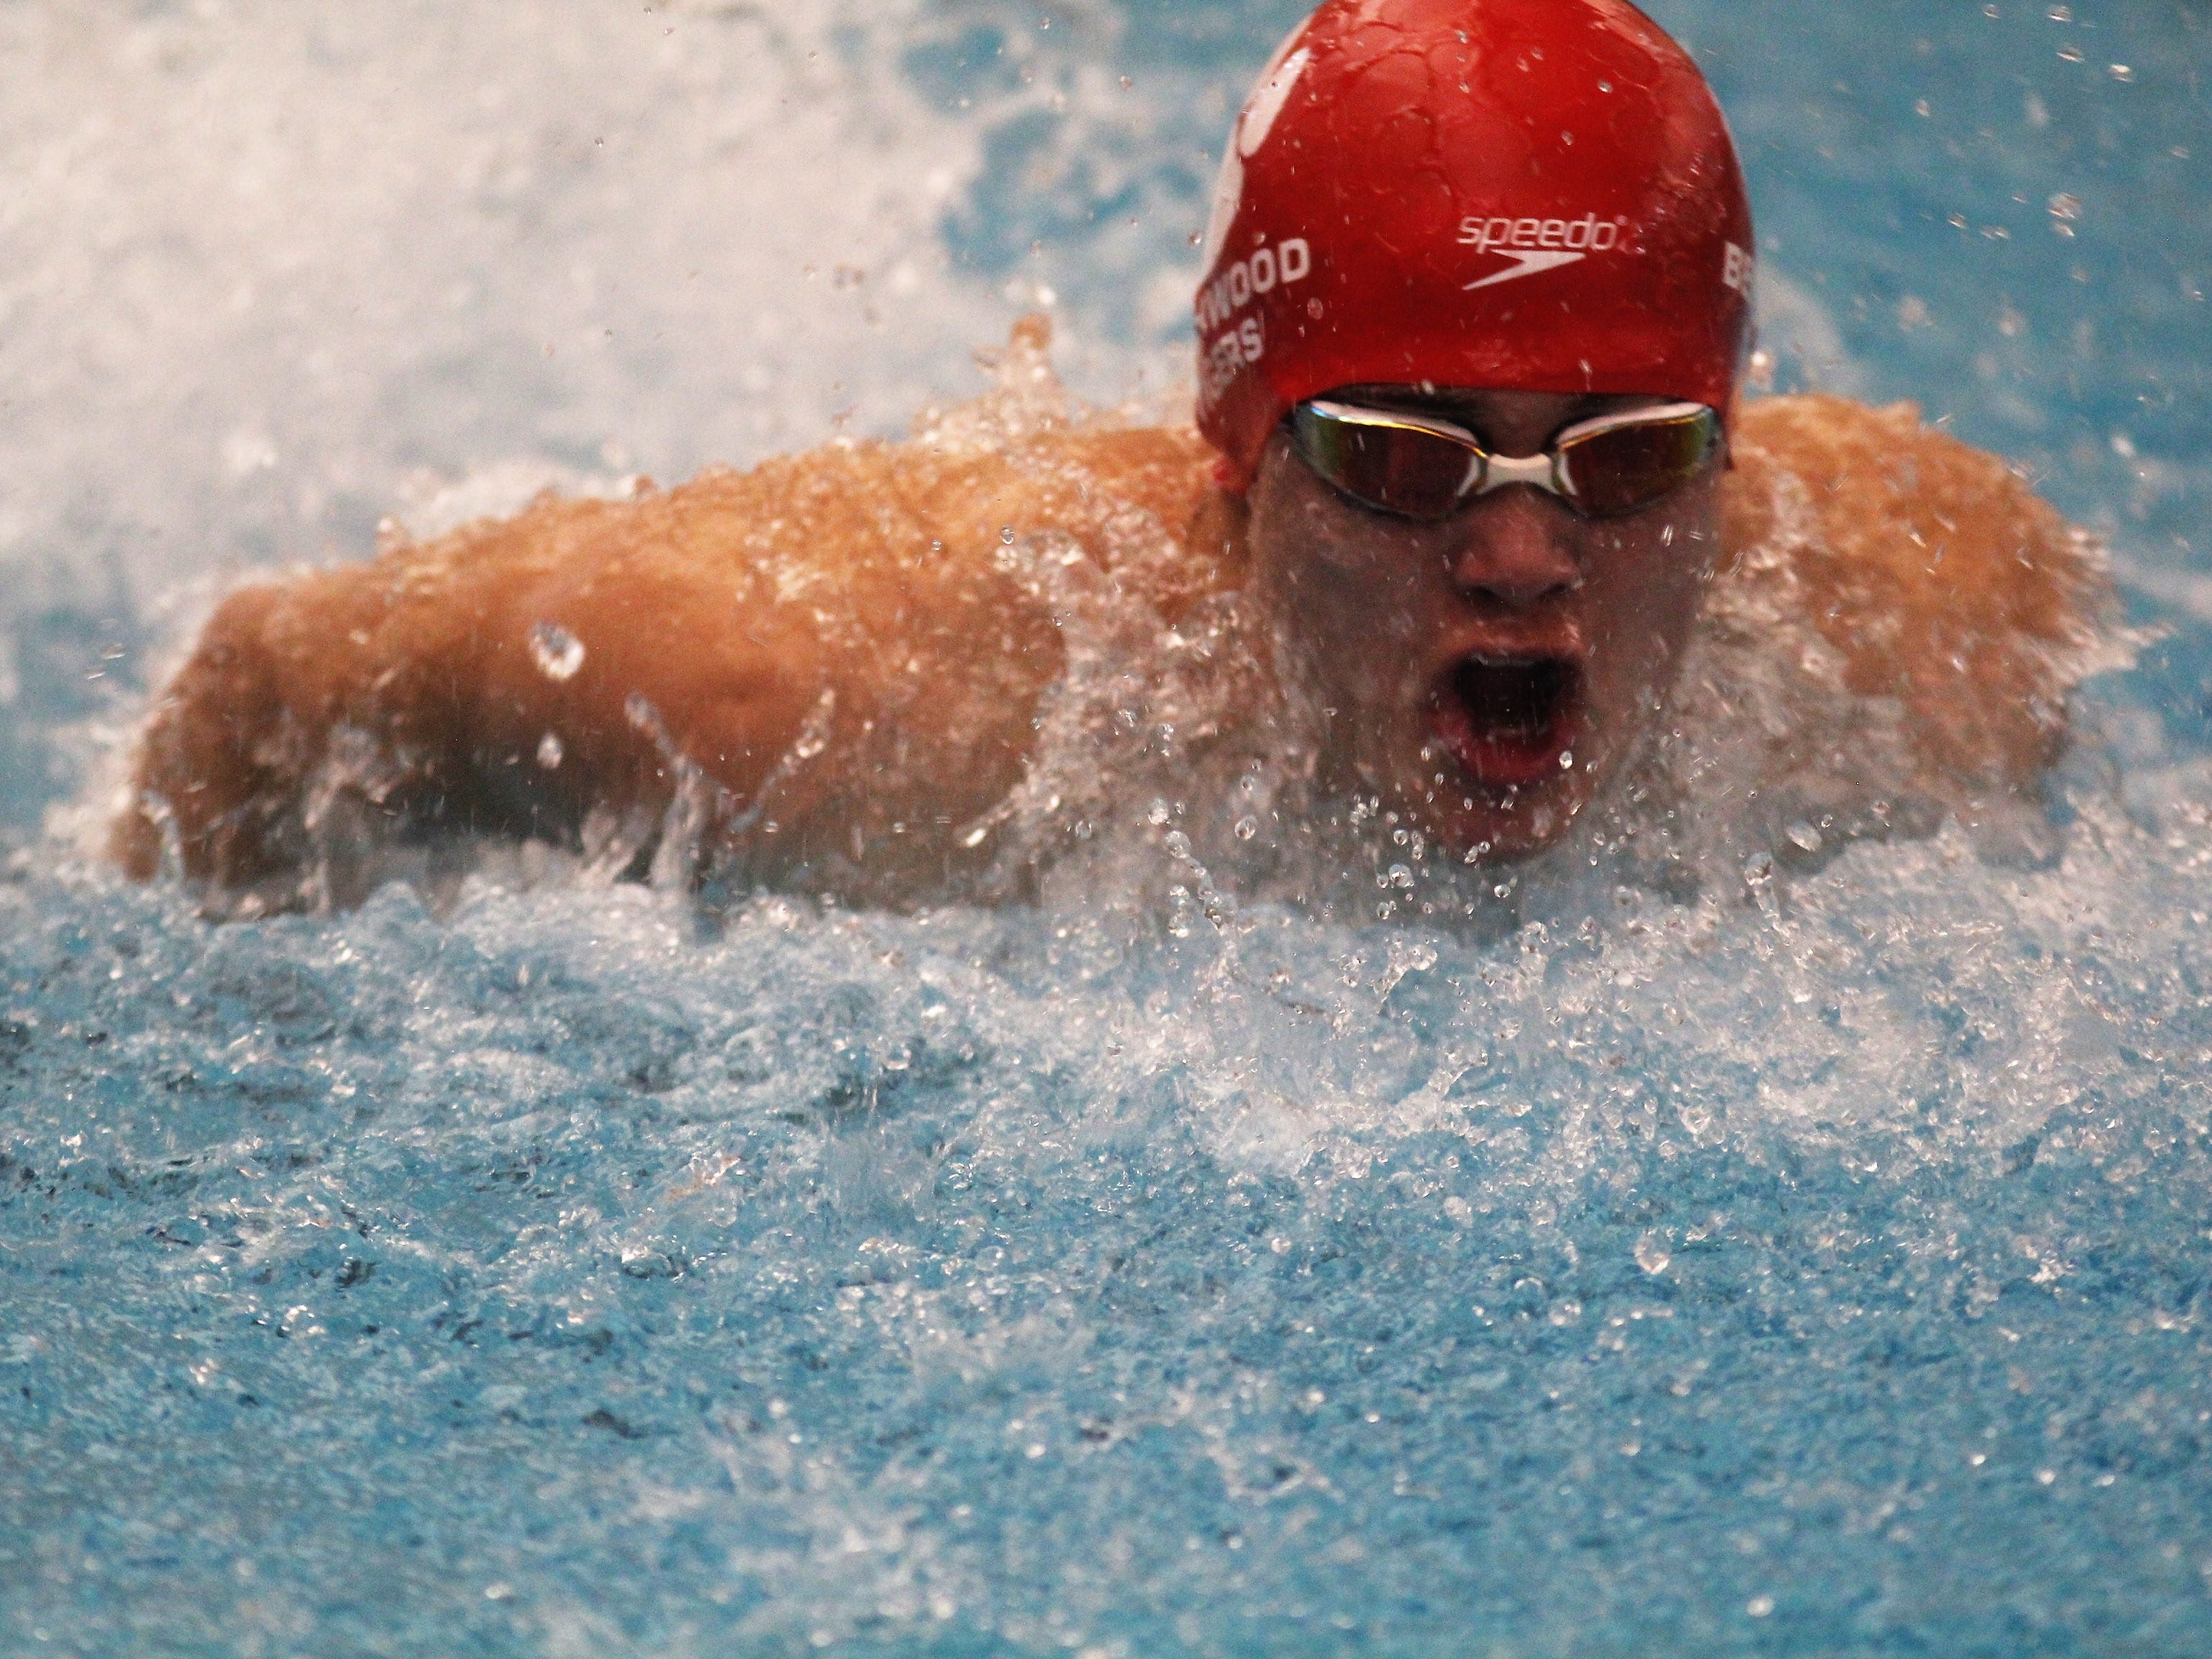 Beechwood junior Tristen Richards swims the 100 butterfly during the KHSAA boys state swimming and diving championships Feb. 22, 2019 at the University of Louisville.